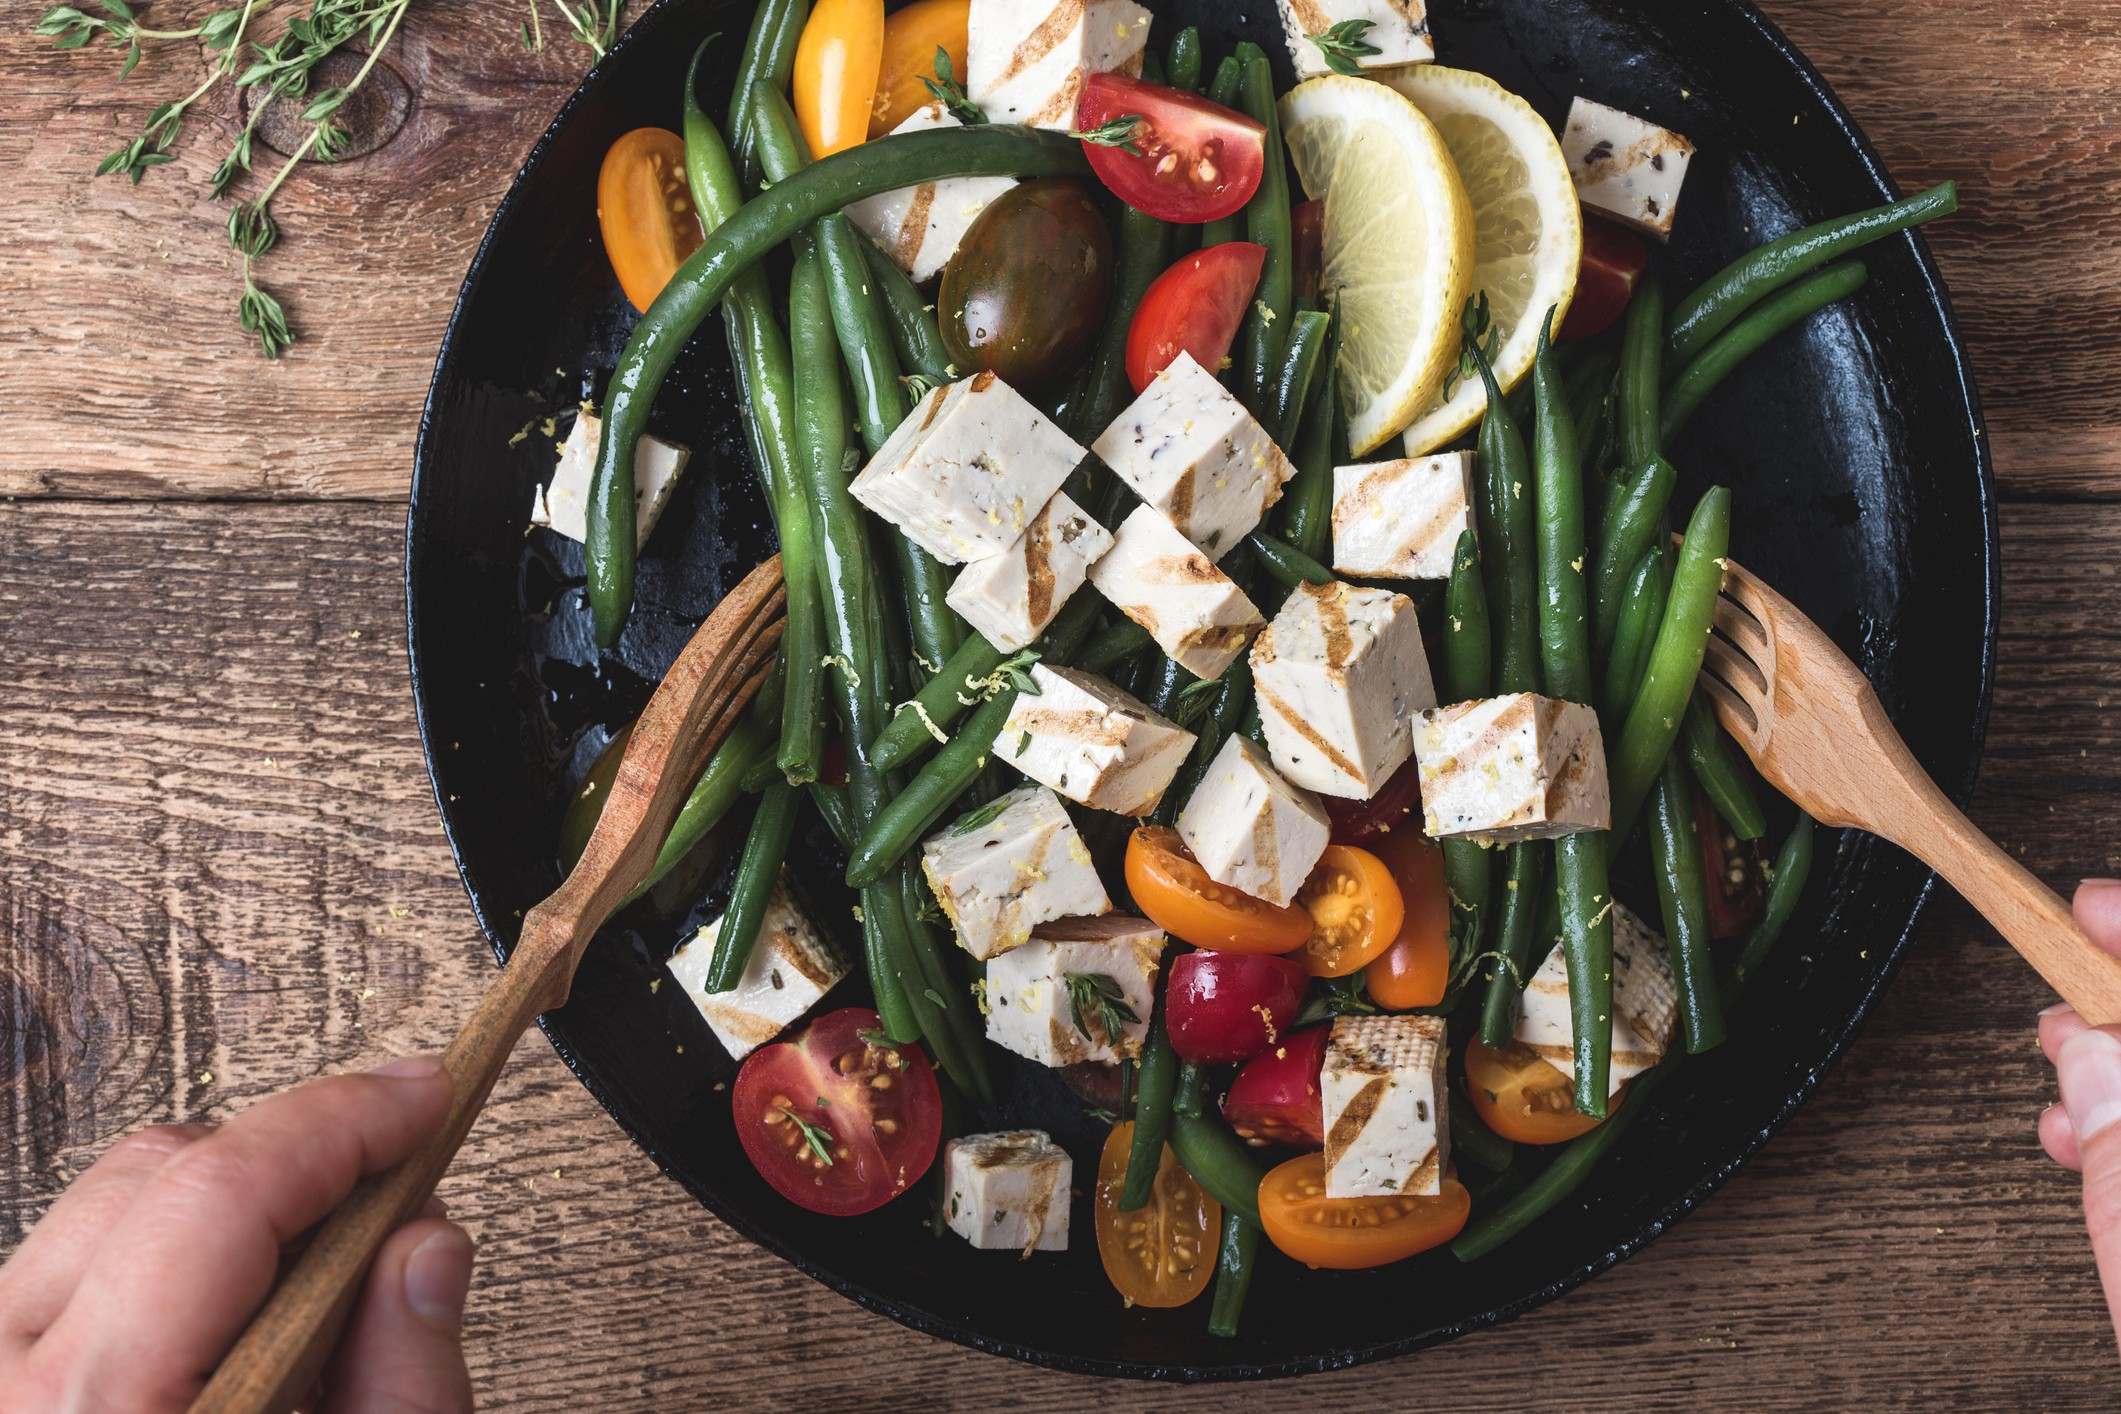 Hands using wooden utensils to toss a bowl of green beans, cherry tomatoes, and grilled tofu cubes in sauce/vinaigrette.